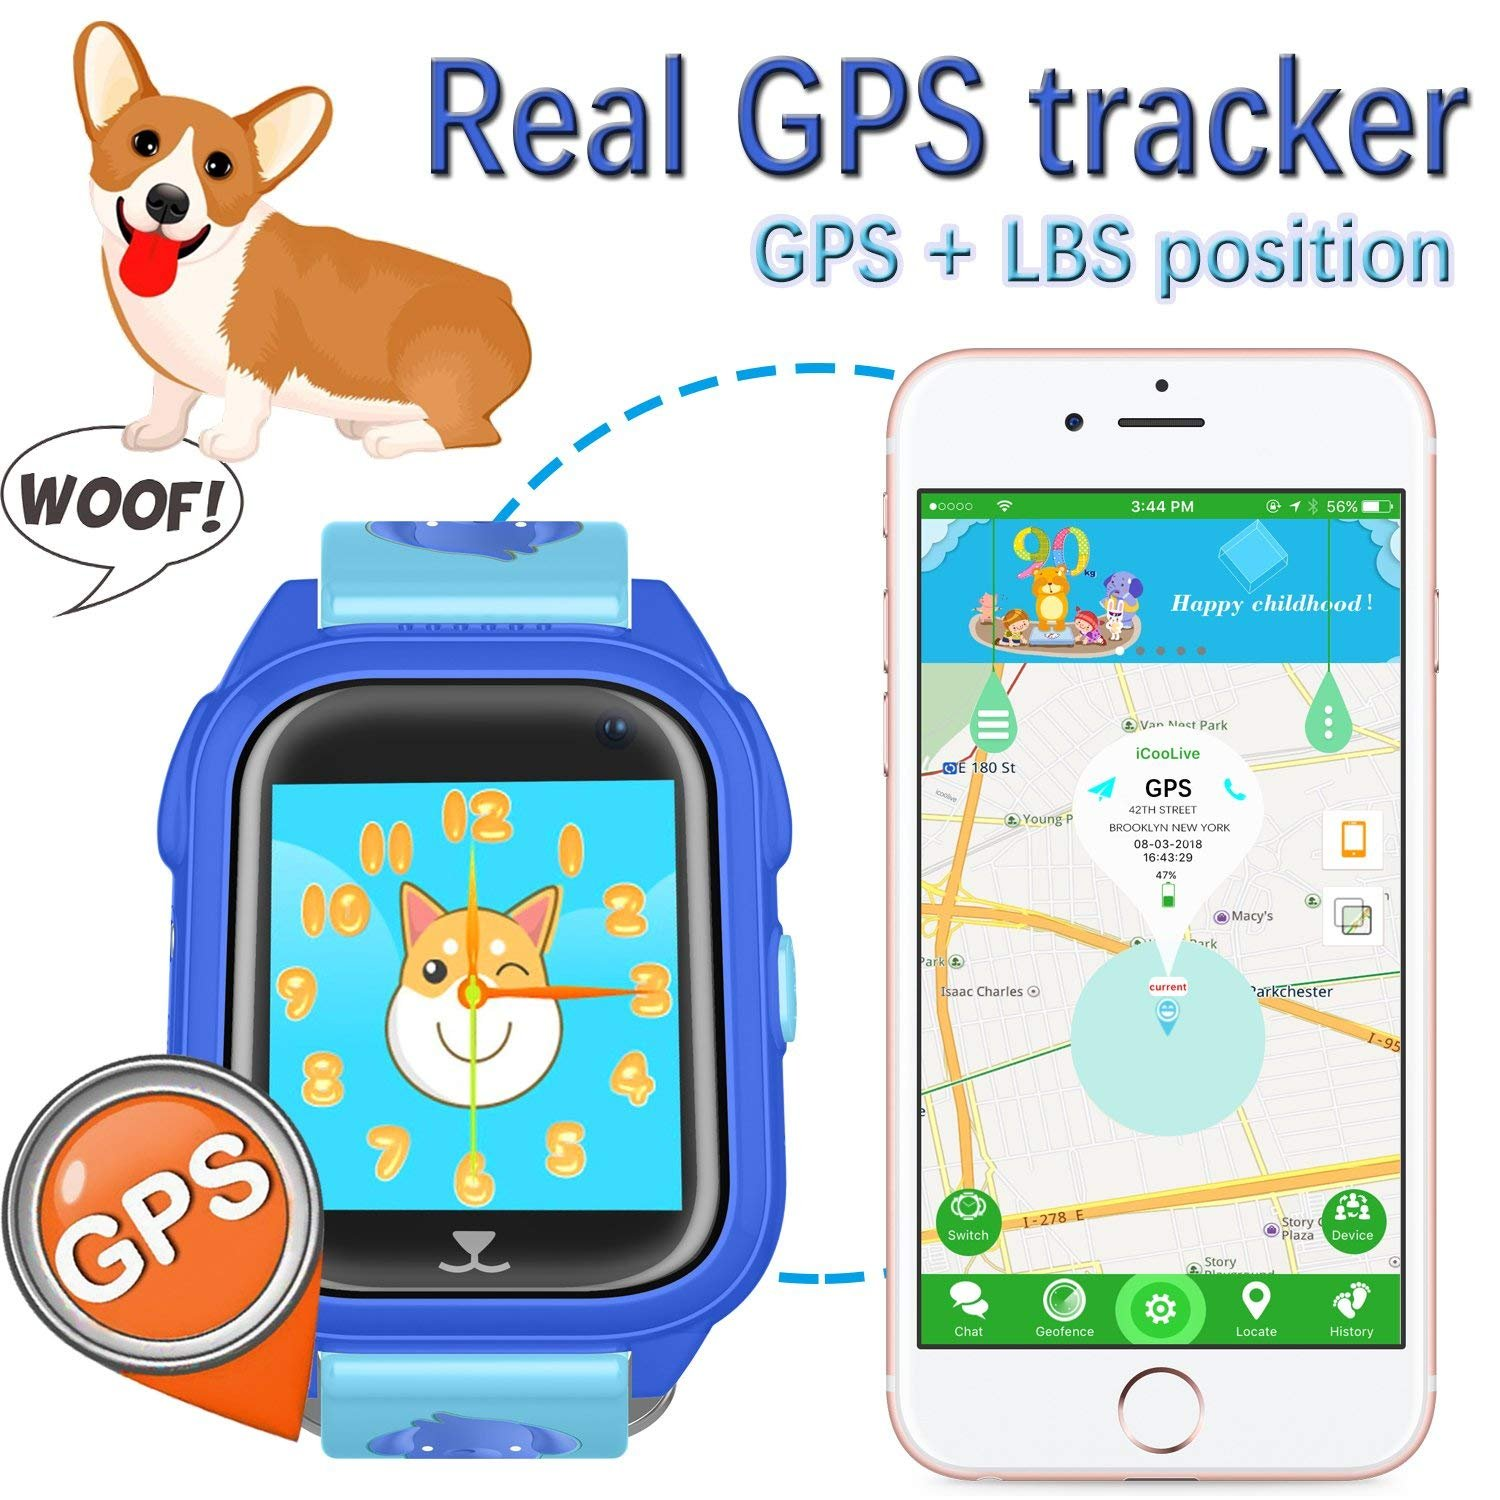 iCooLive Waterproof IP67 Kids Smart Watch Accurate GPS Tracker with FREE SIM CARD for Kid Boys Girls Smartwatch Phone watch Game watch with SOS Call Camera Electronic Learning Toys Birthday Gift by iCooLive (Image #3)